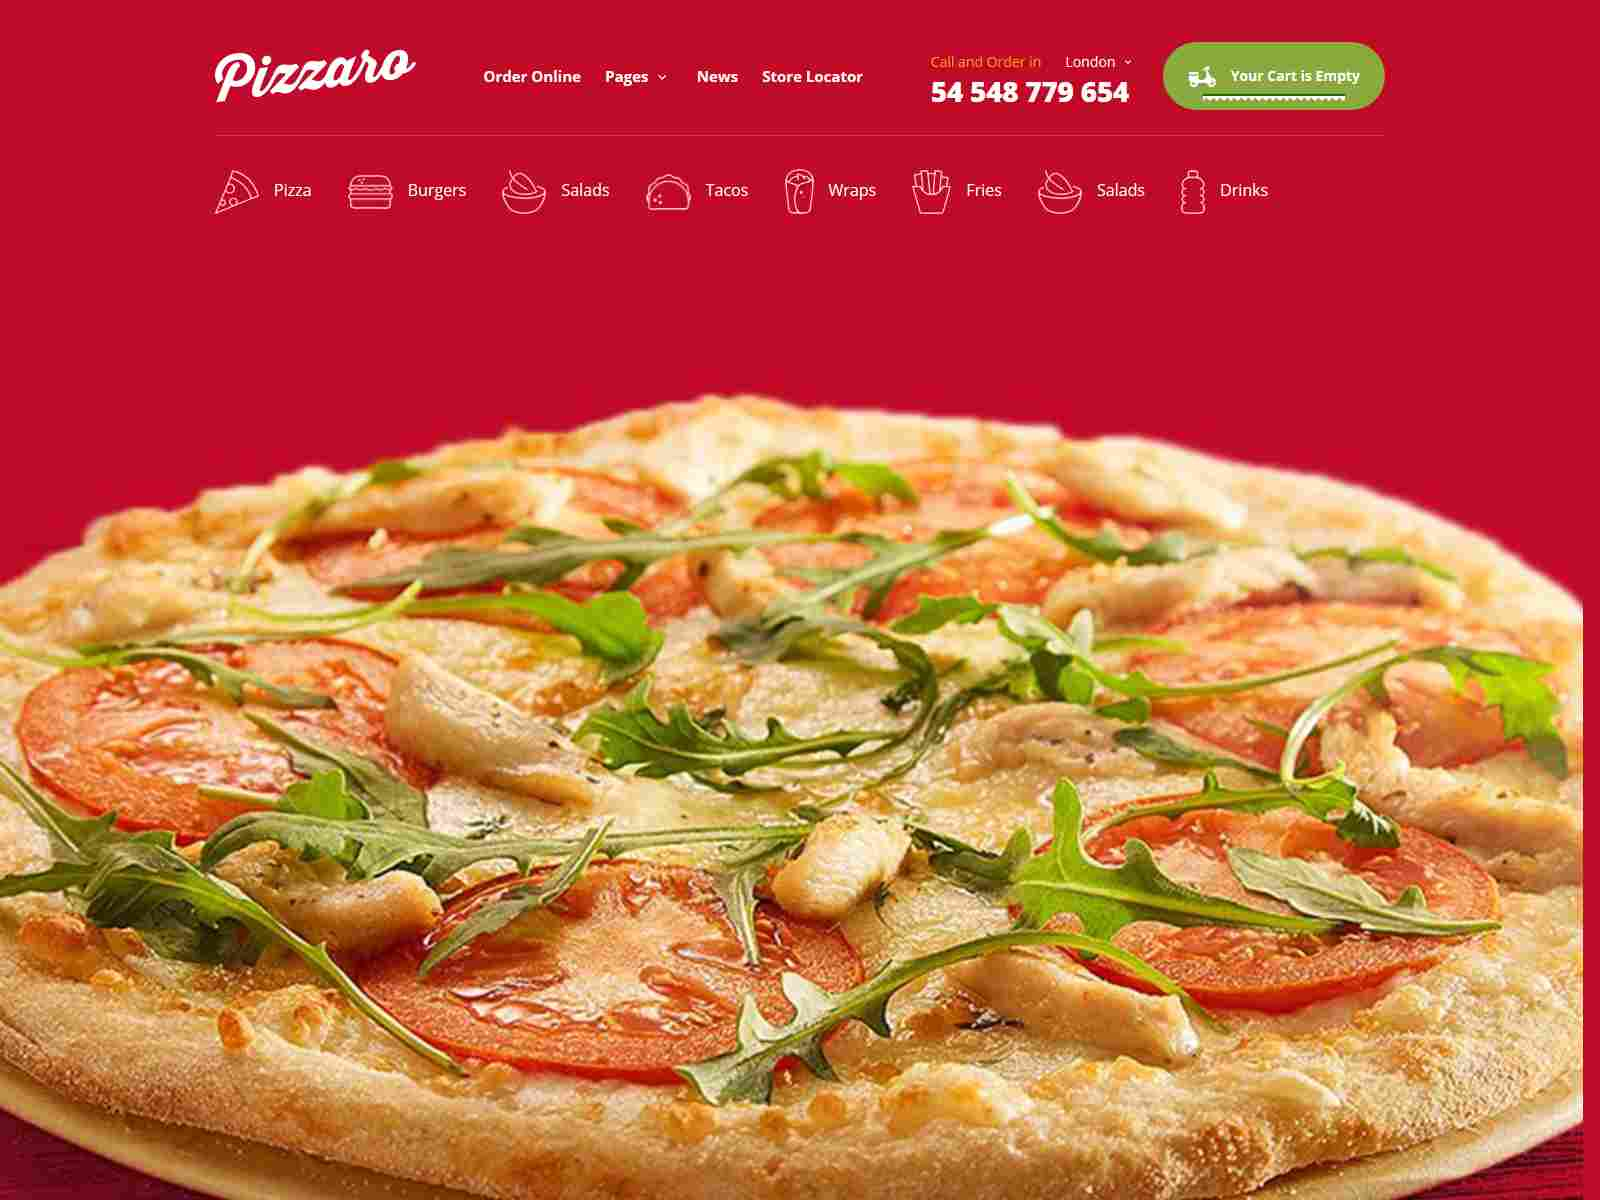 Food Store Shopify Theme - Pizzaro